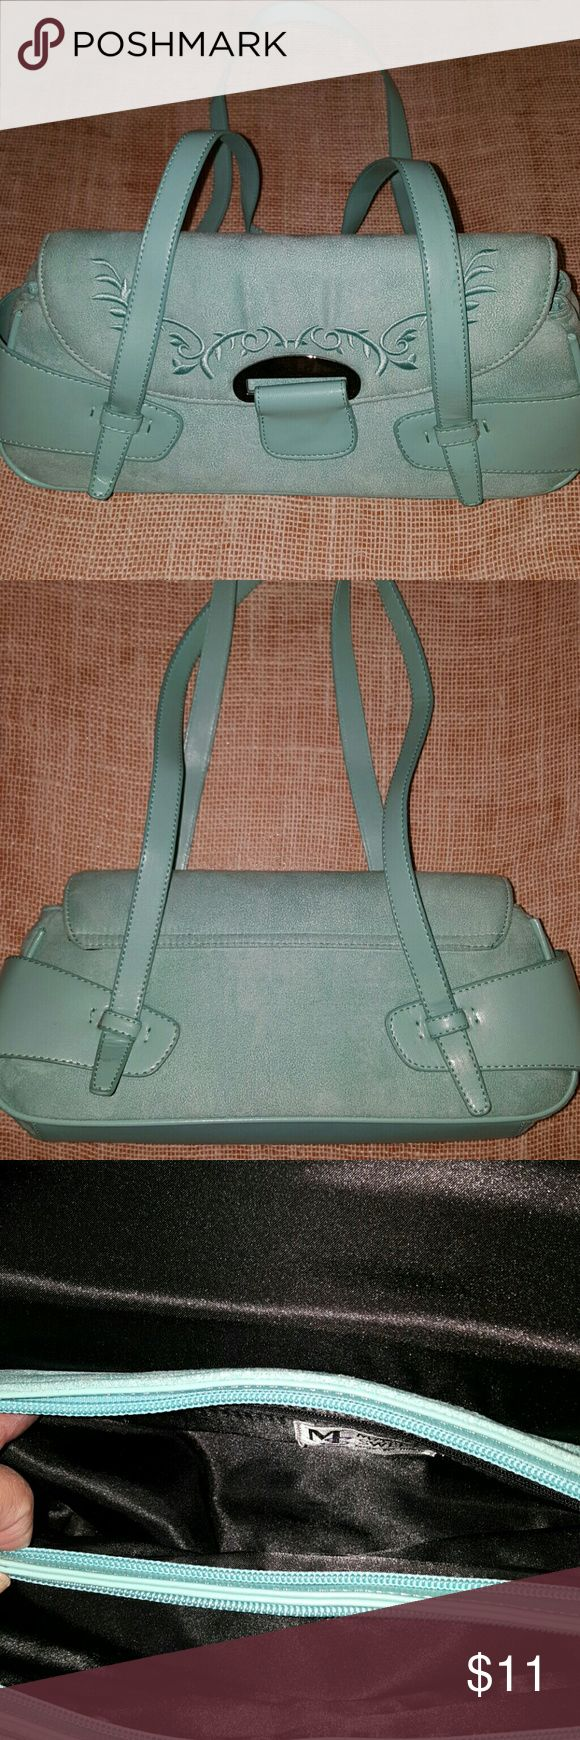 """Maggie Sweet Gigi Bag NWOT baguette style purse. 2 main inner zippered pockets with 1 small zipper inside pocket. Soft velvety touch. 14"""" length and 6 1/2"""" tall. 9 1/2"""" drop. Aqua color. maggie sweet  Bags Clutches & Wristlets"""